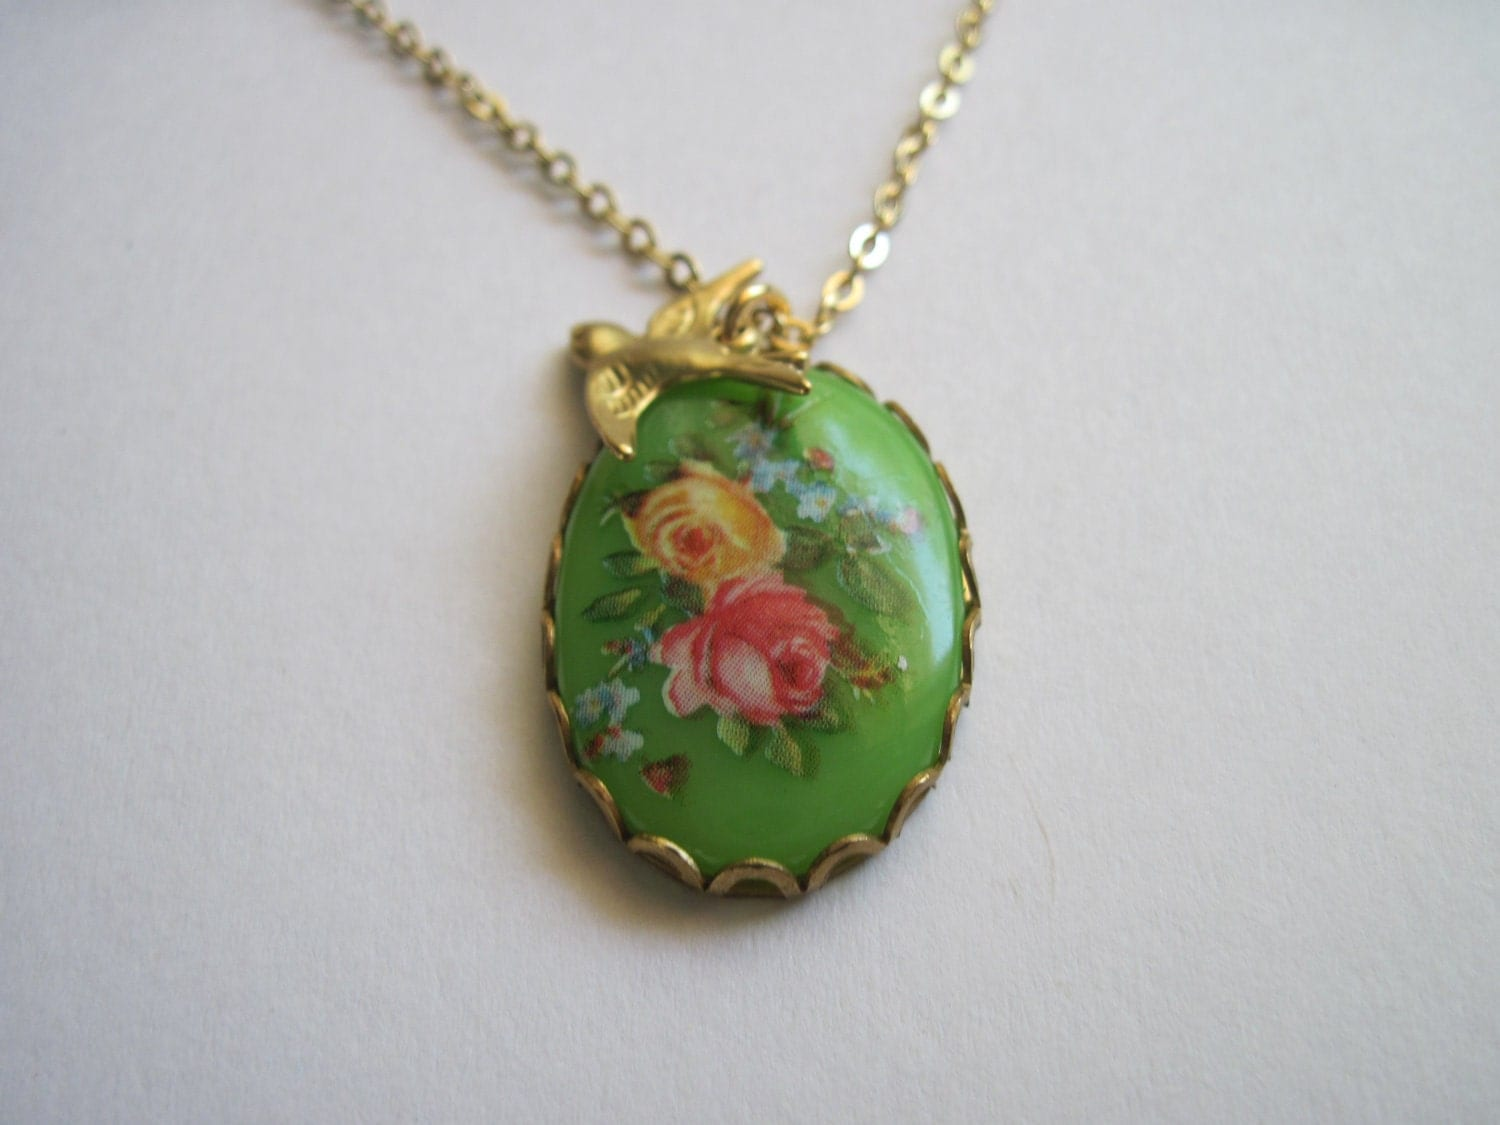 Green flower cameo charm necklace